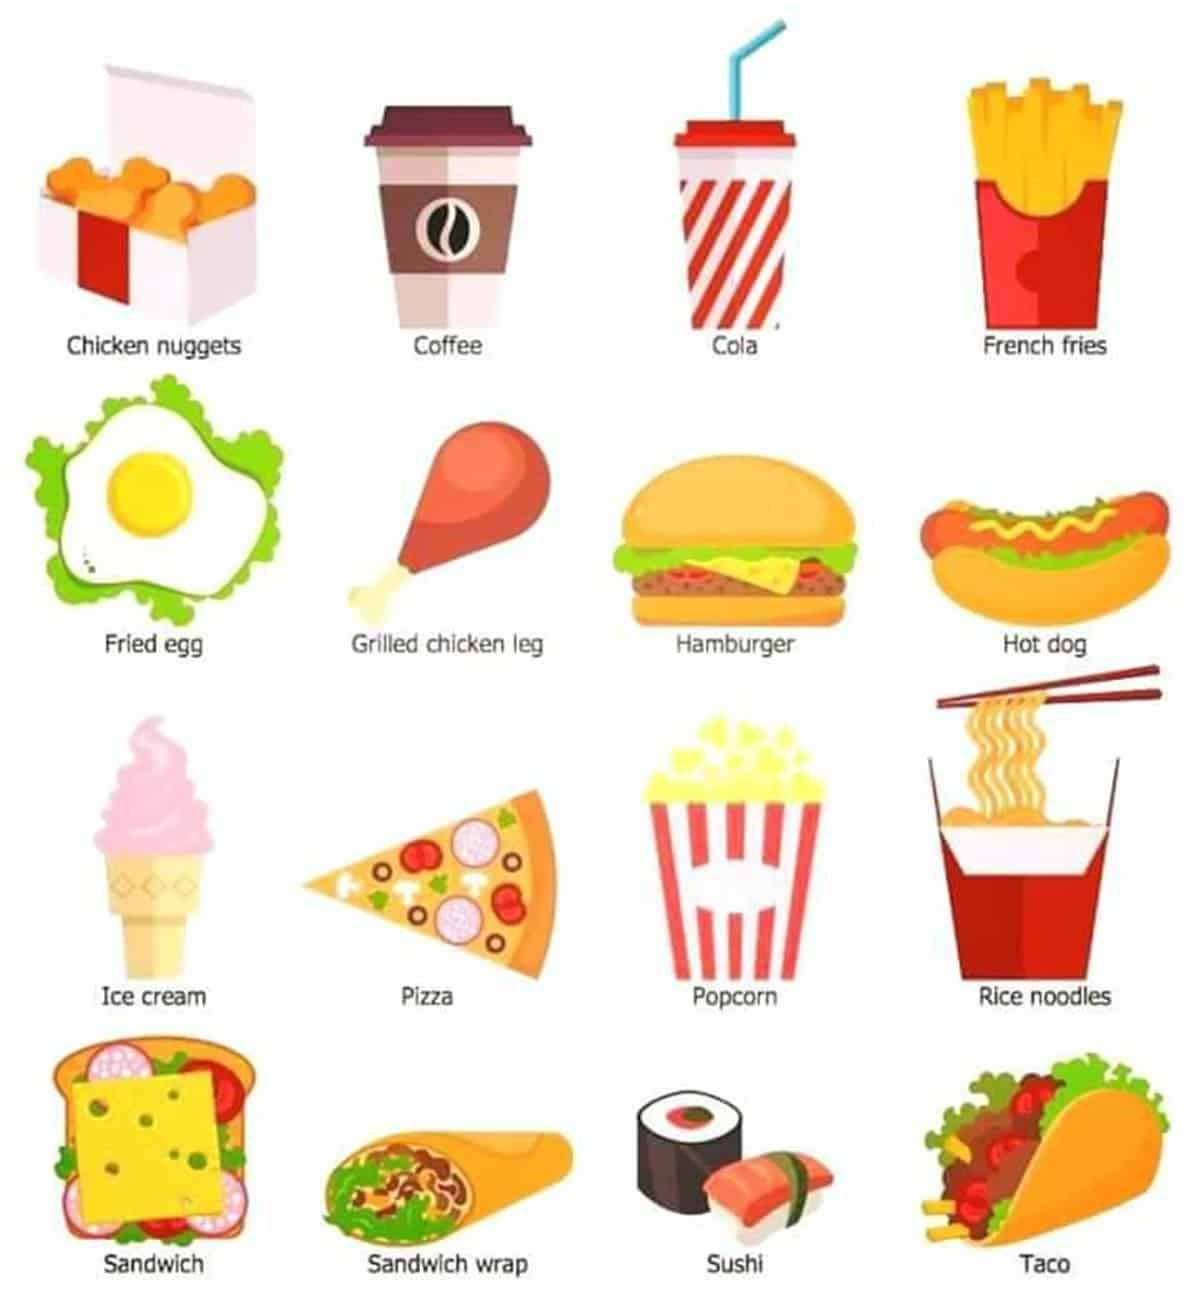 English Vocabulary For Fast Food 15